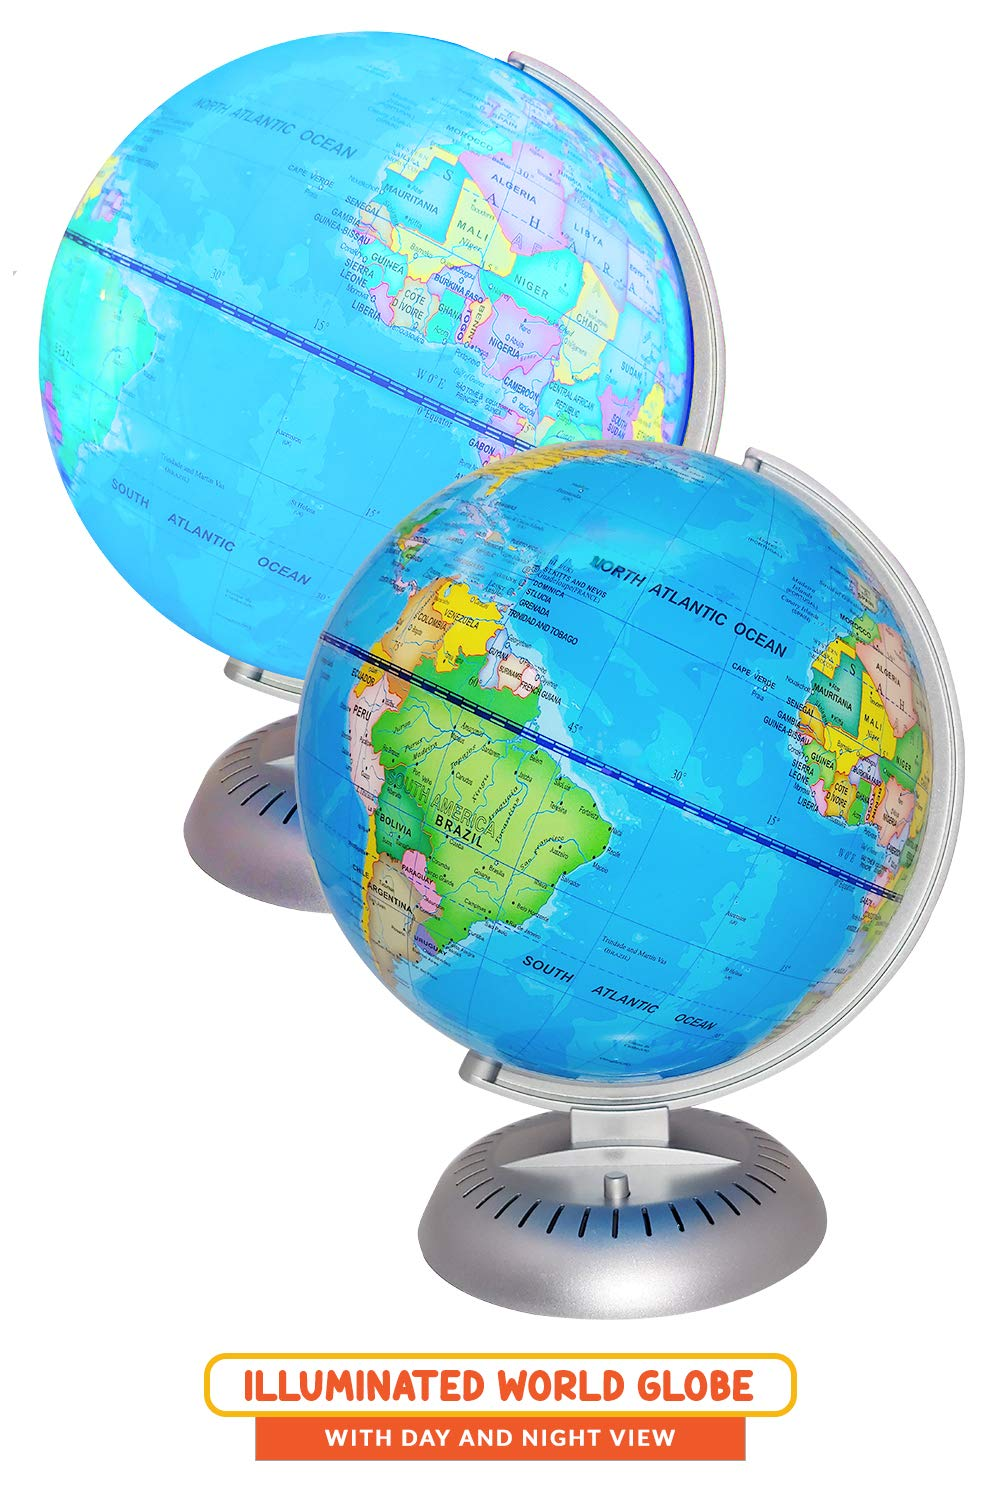 Illuminated World Globe Lights by KinderBerries - 8'' Globe of The World with Stand Night Lights for Kids - Built-in LED Light Earth Globe with Easy to Read Labels for Continents, Countries, Capitals